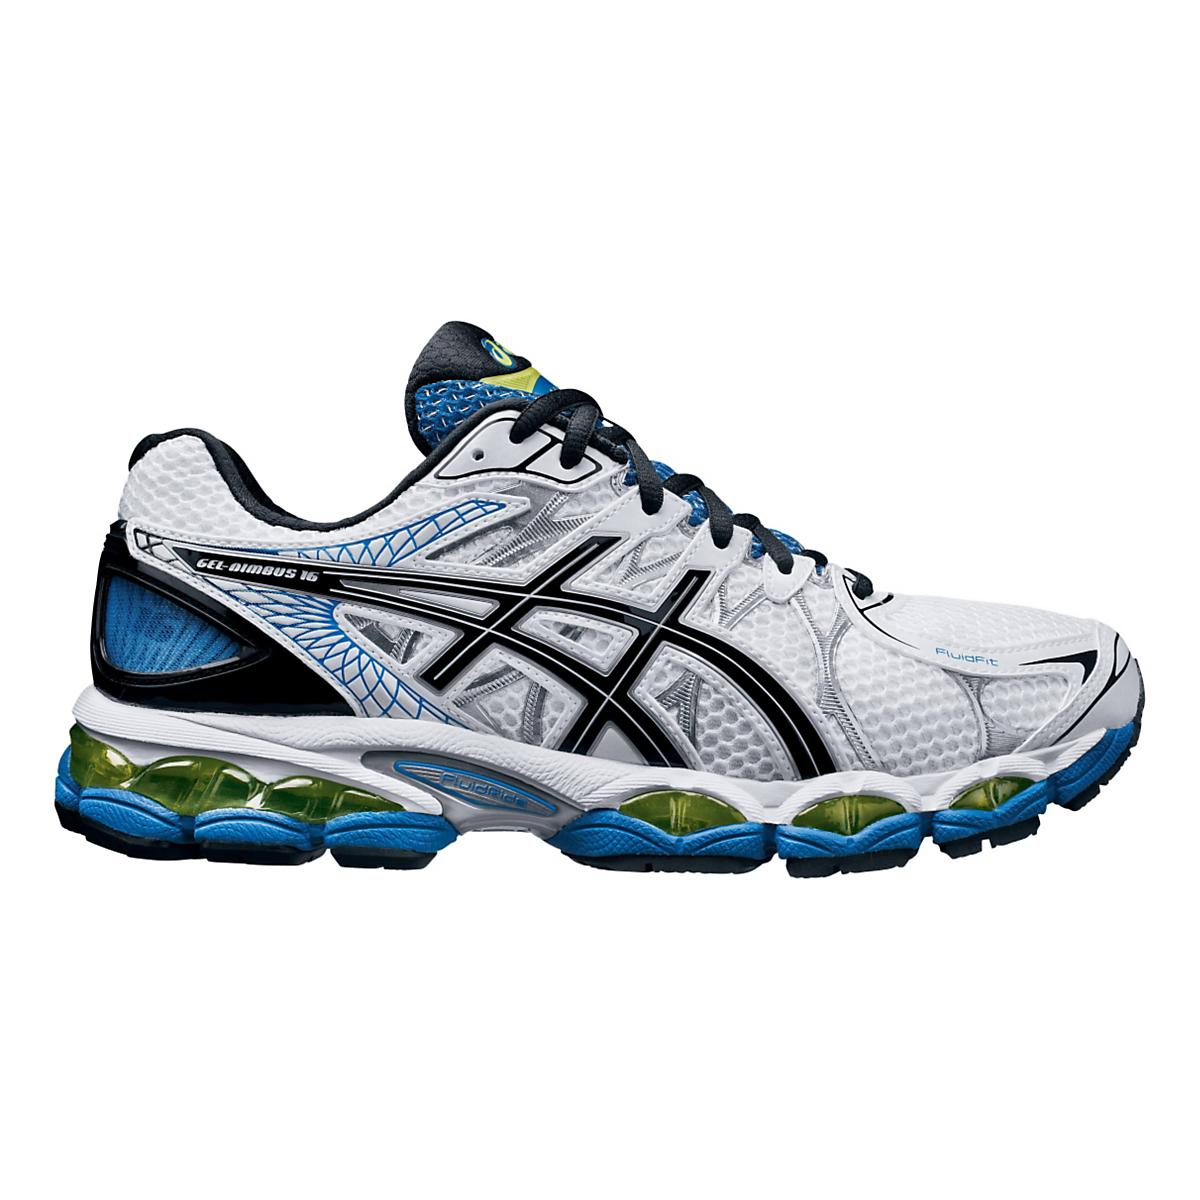 mens asics gel cumulus 16 running shoe at road runner sports. Black Bedroom Furniture Sets. Home Design Ideas